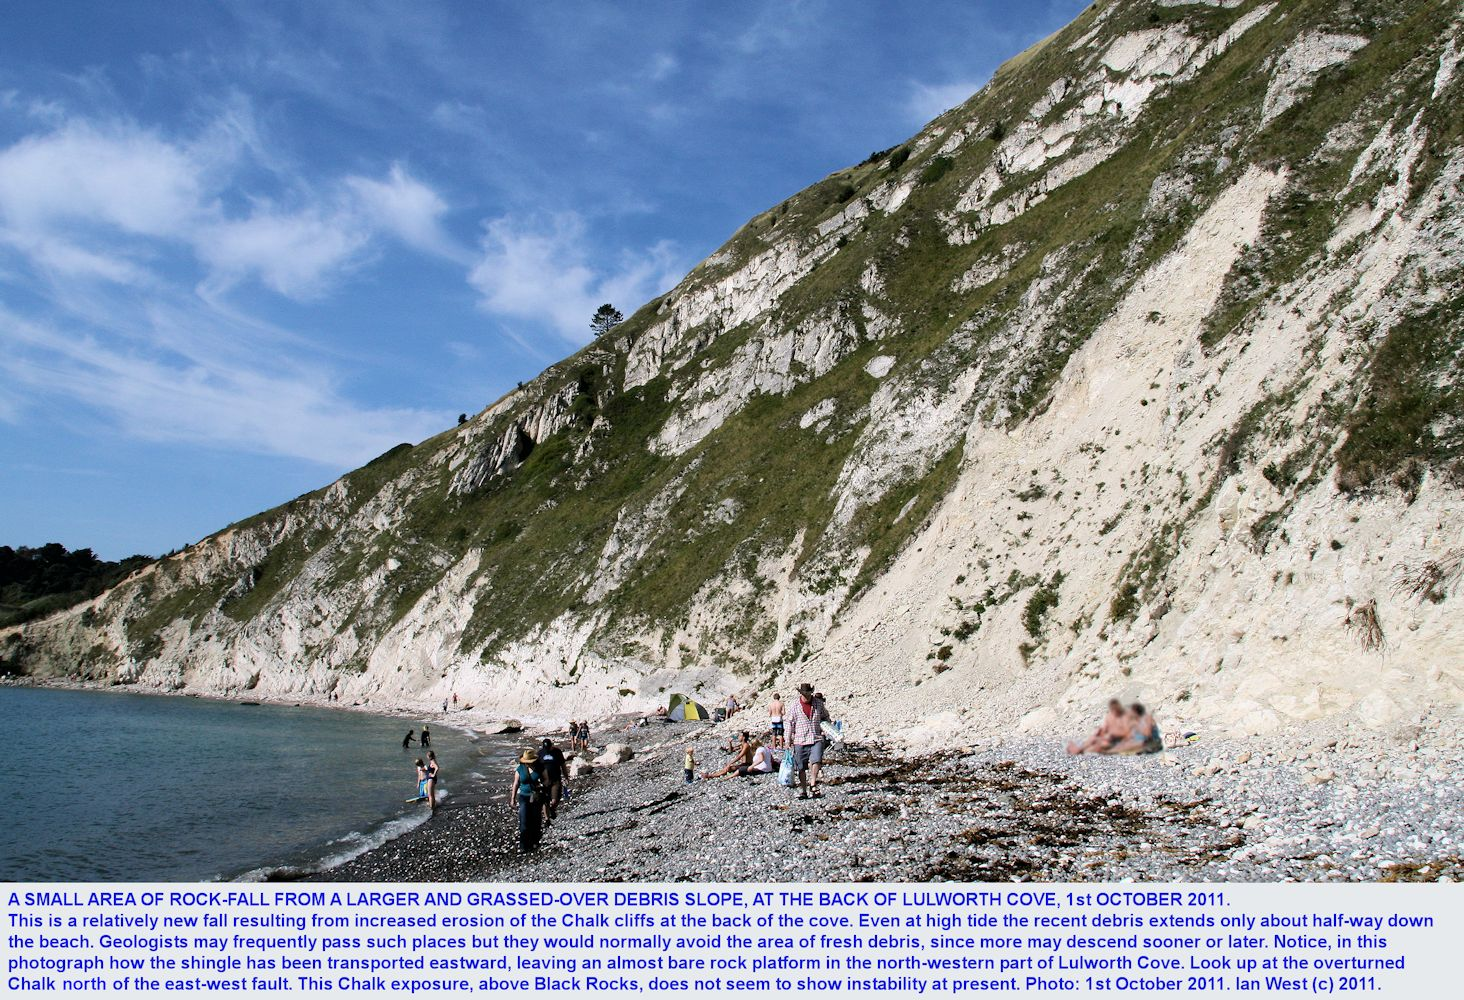 A small but new rock fall of Chalk debris at the back of Lulworth Cove, Dorset, as seen on 1st October 2011